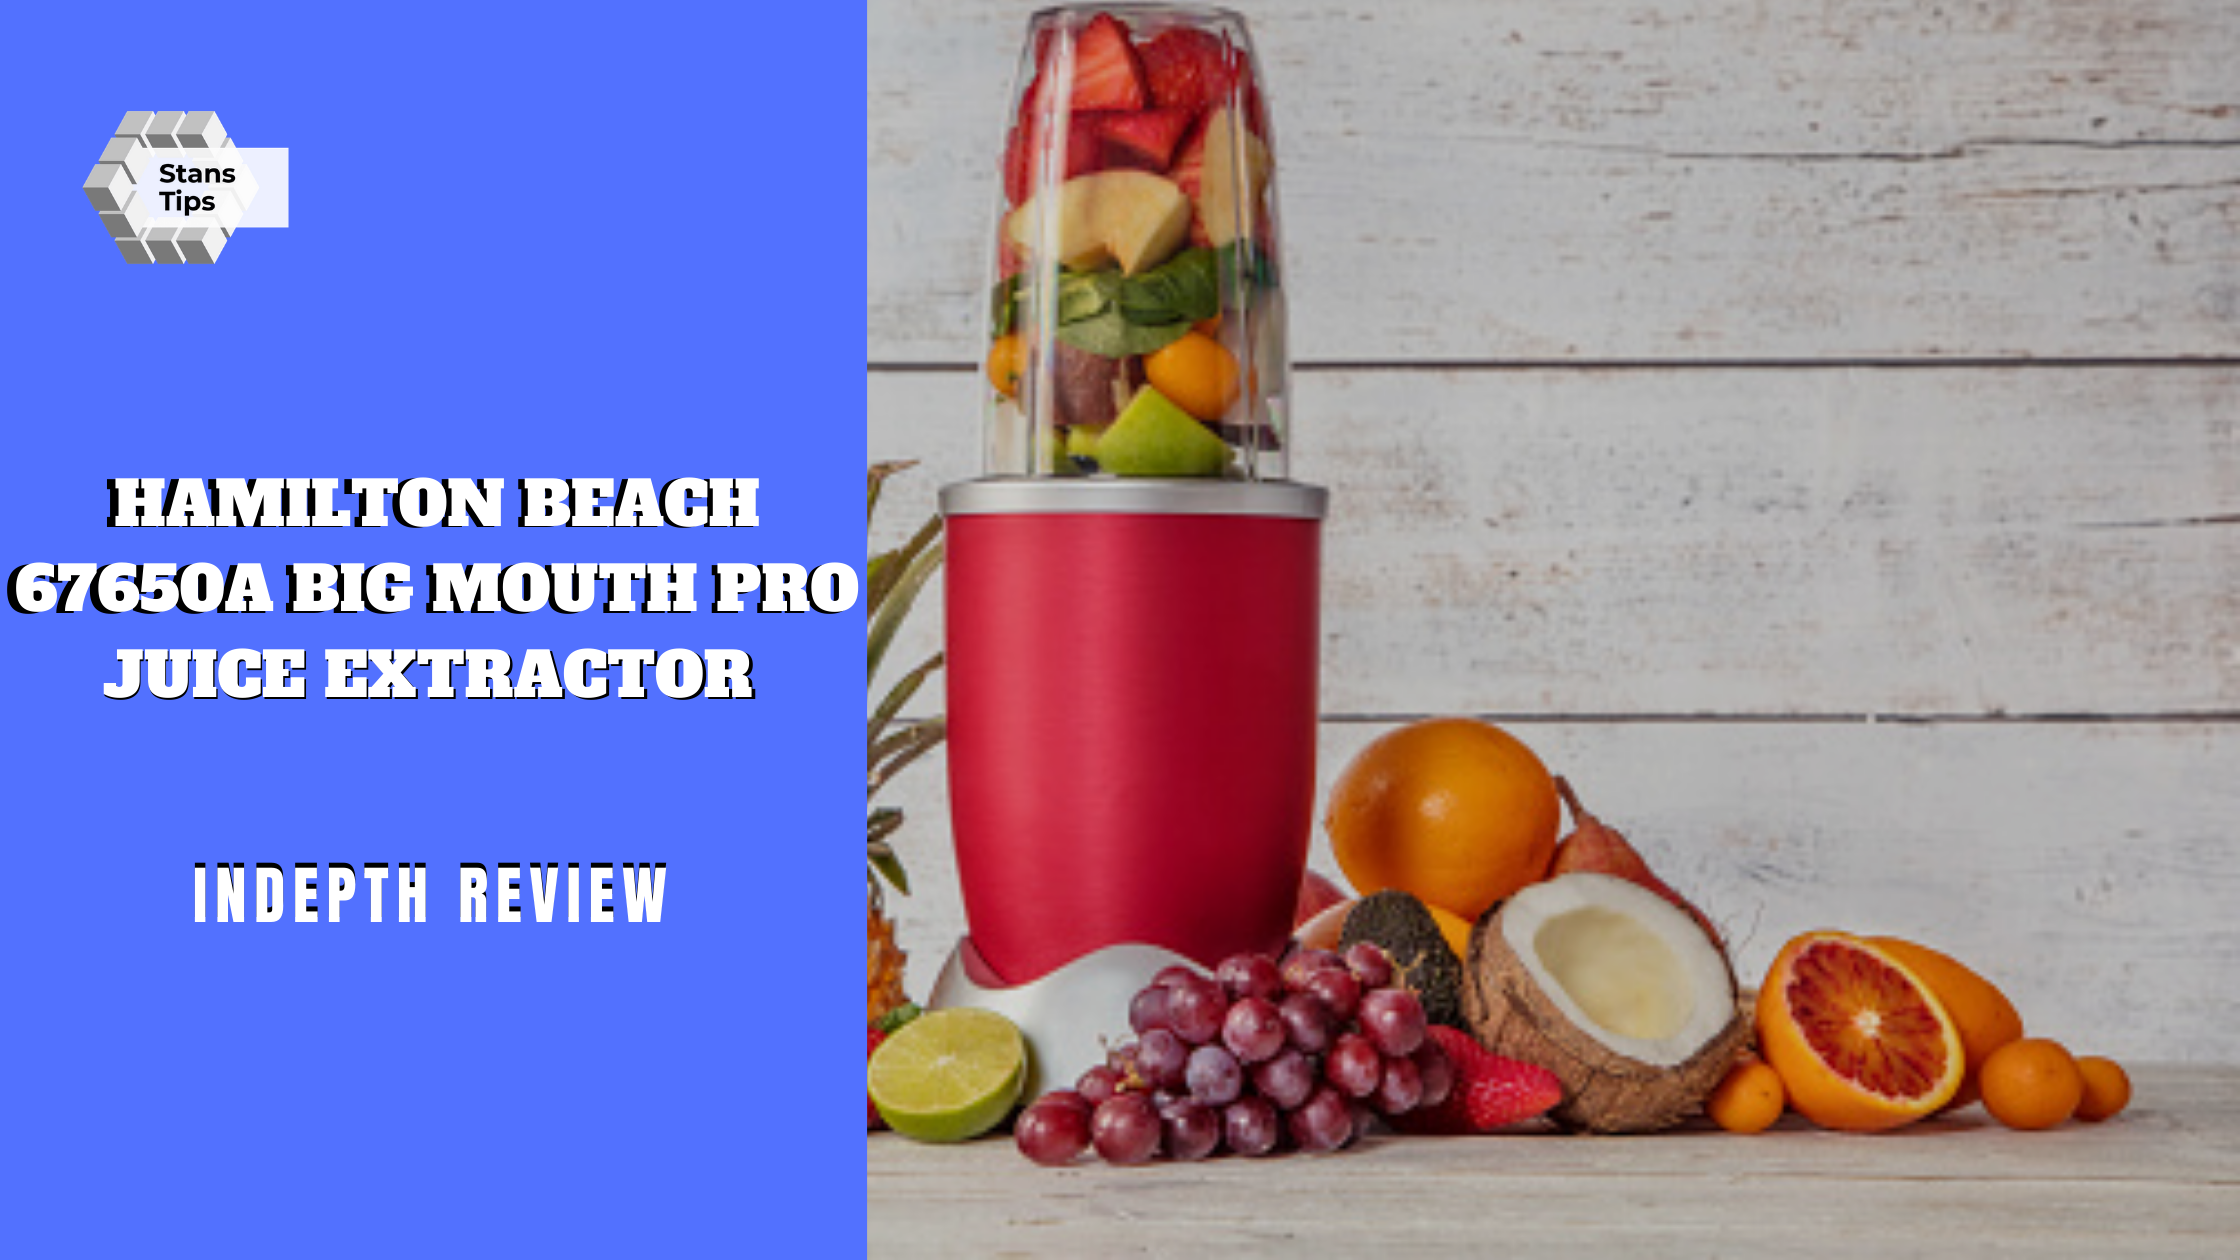 Hamilton beach 67650a big mouth pro juice extractor review